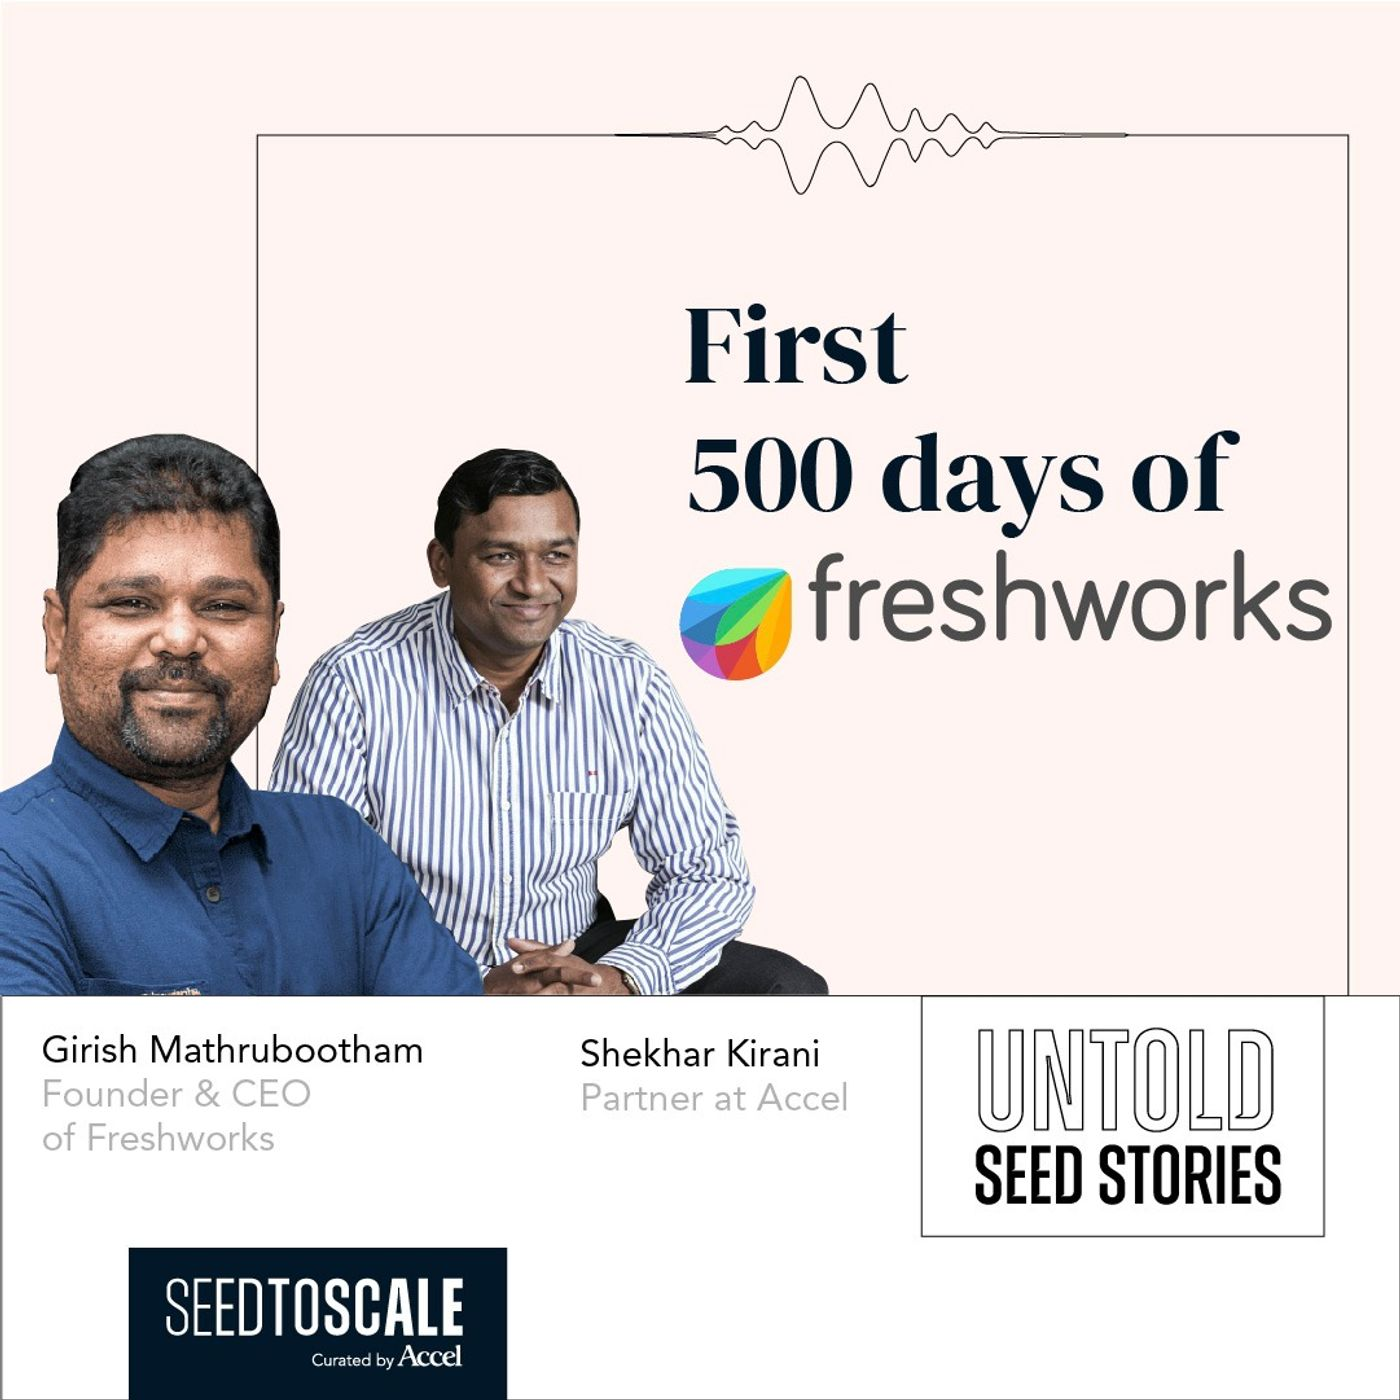 INSIGHTS #62 – Untold Seed Stories: First 500 Days of Freshworks